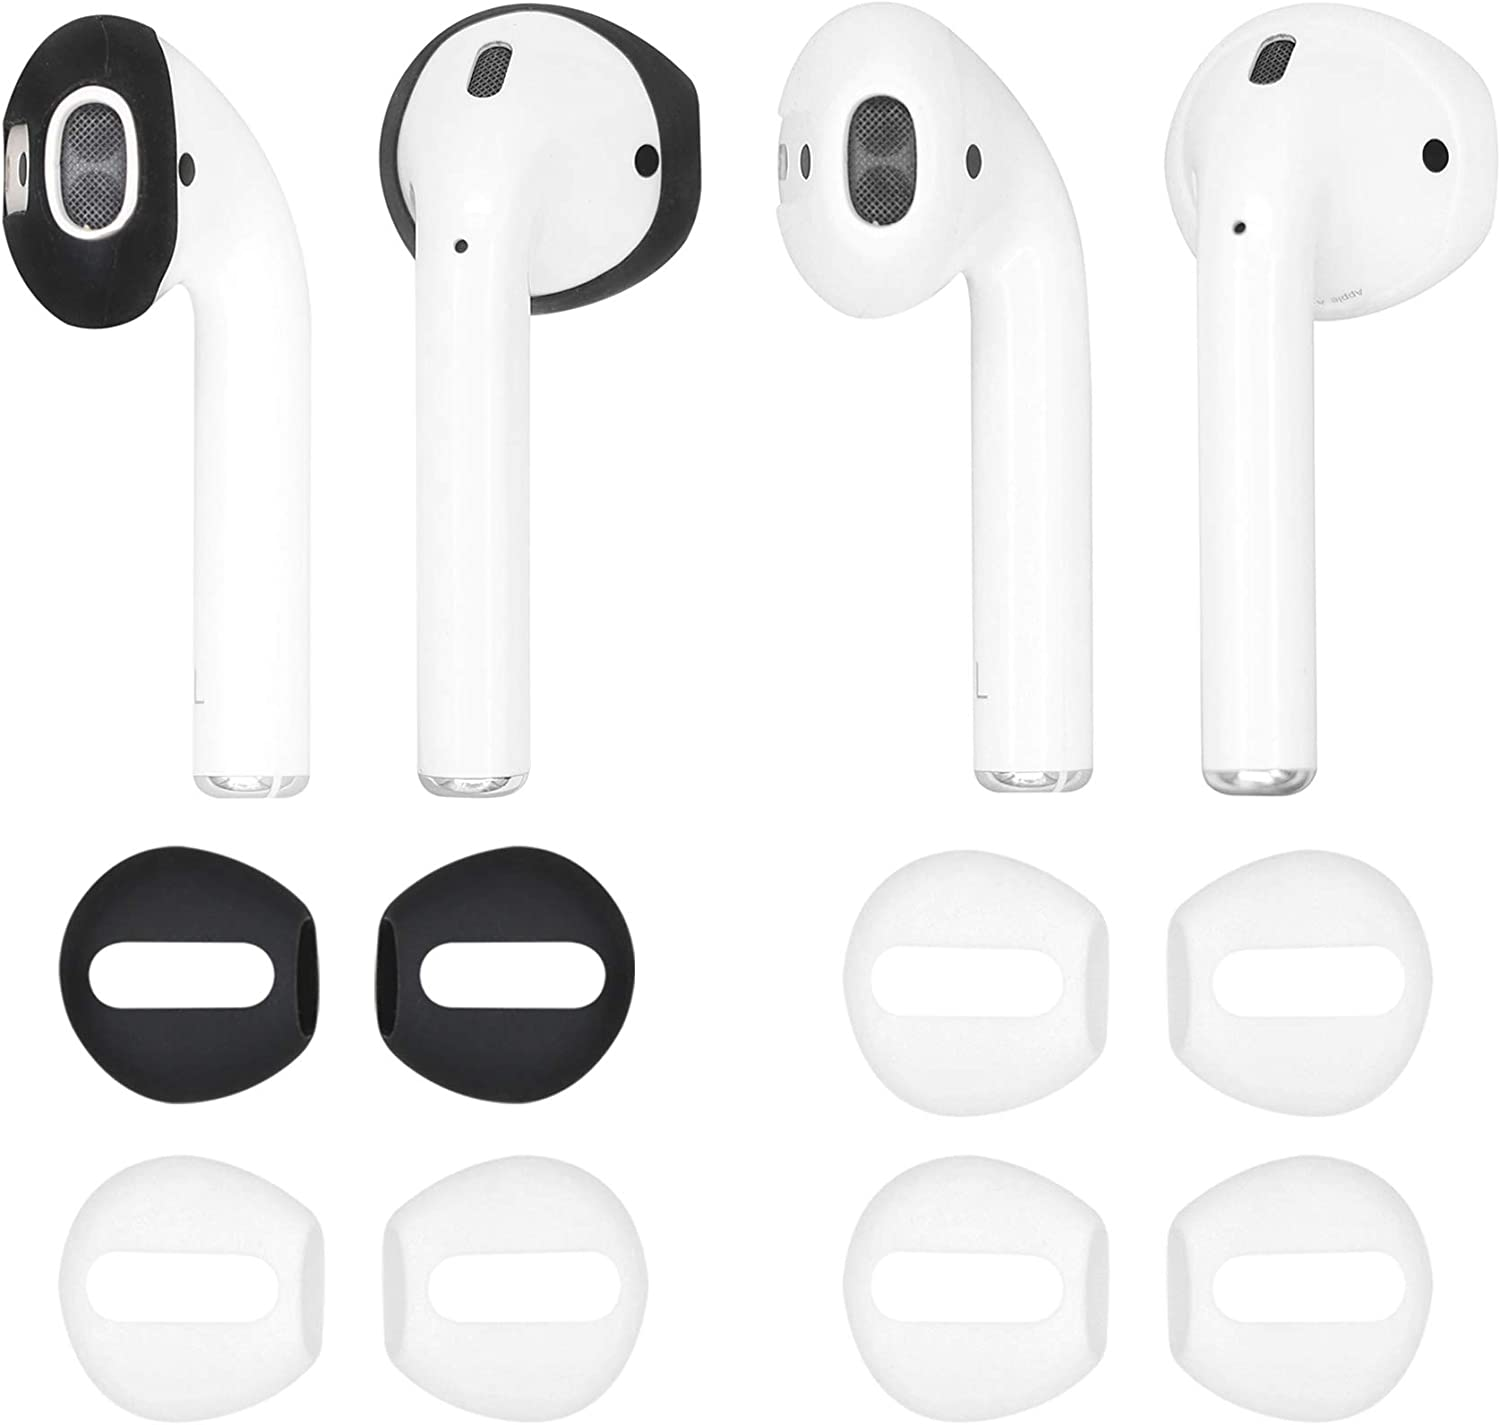 IiEXCEL (Fit in Case) 4 Pairs Replacement Super Thin Slim Rubber Silicone Earbuds Ear Tips and Covers Skin for Apple AirPods or EarPods Headphones (Fit in Charging Case) (1 Black 3 White)